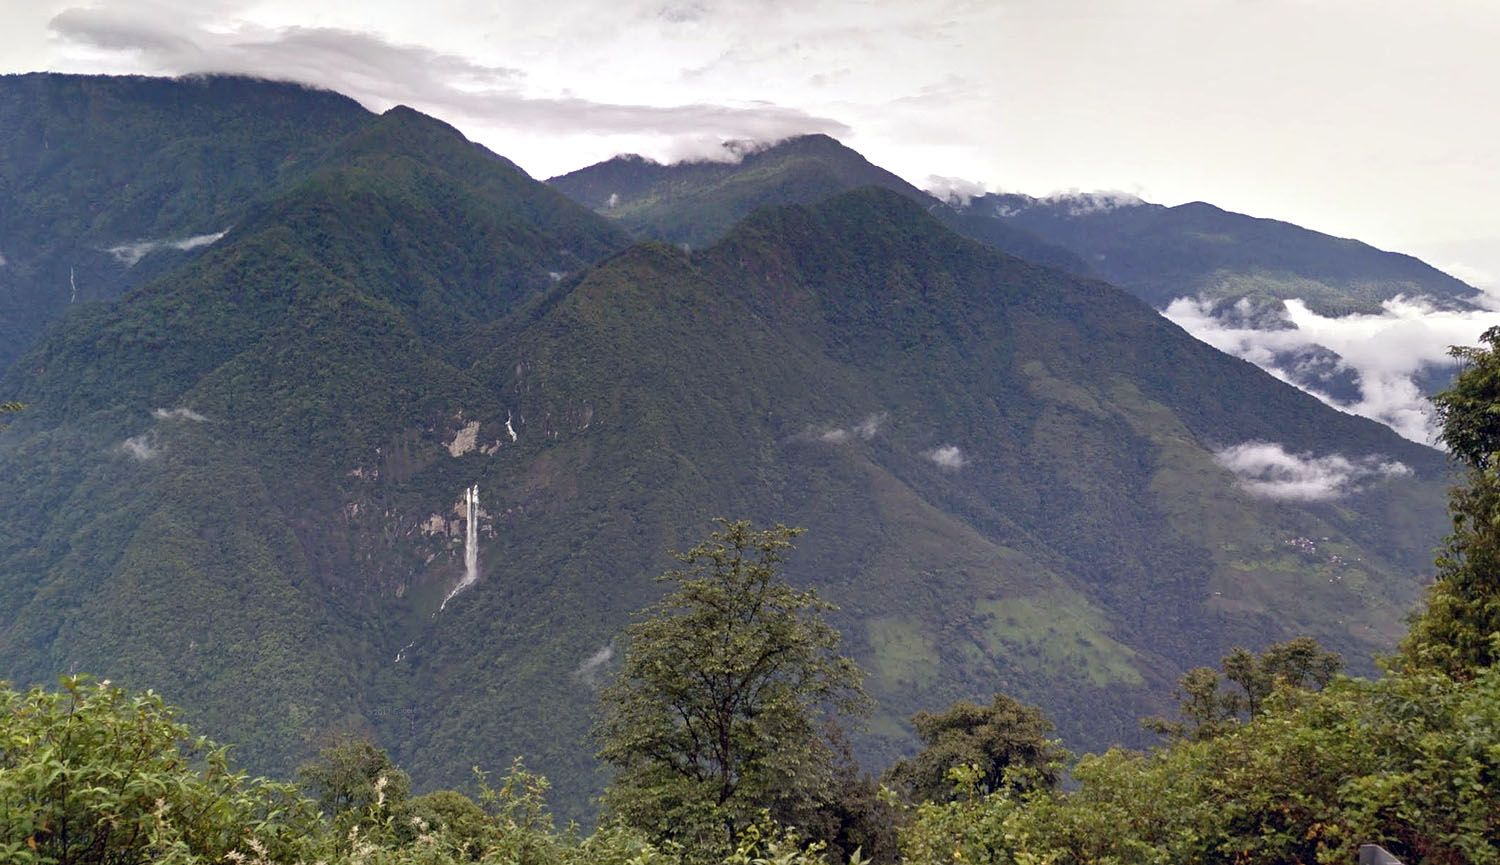 """<span>A waterfall visible from the </span>Phuntsholing-Thimphu Highway<span>. <a href=""""https://goo.gl/maps/lc4AQ"""">See it mapped</a>.</span>"""